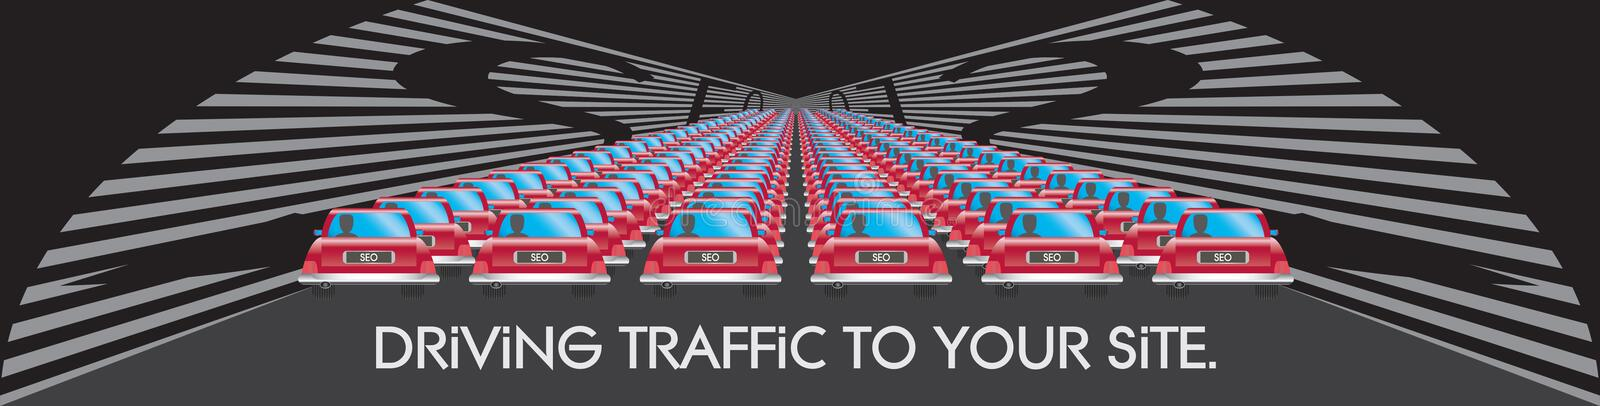 Download SEO Driving Traffic To Your Website Illustration Stock Vector - Image: 26844298